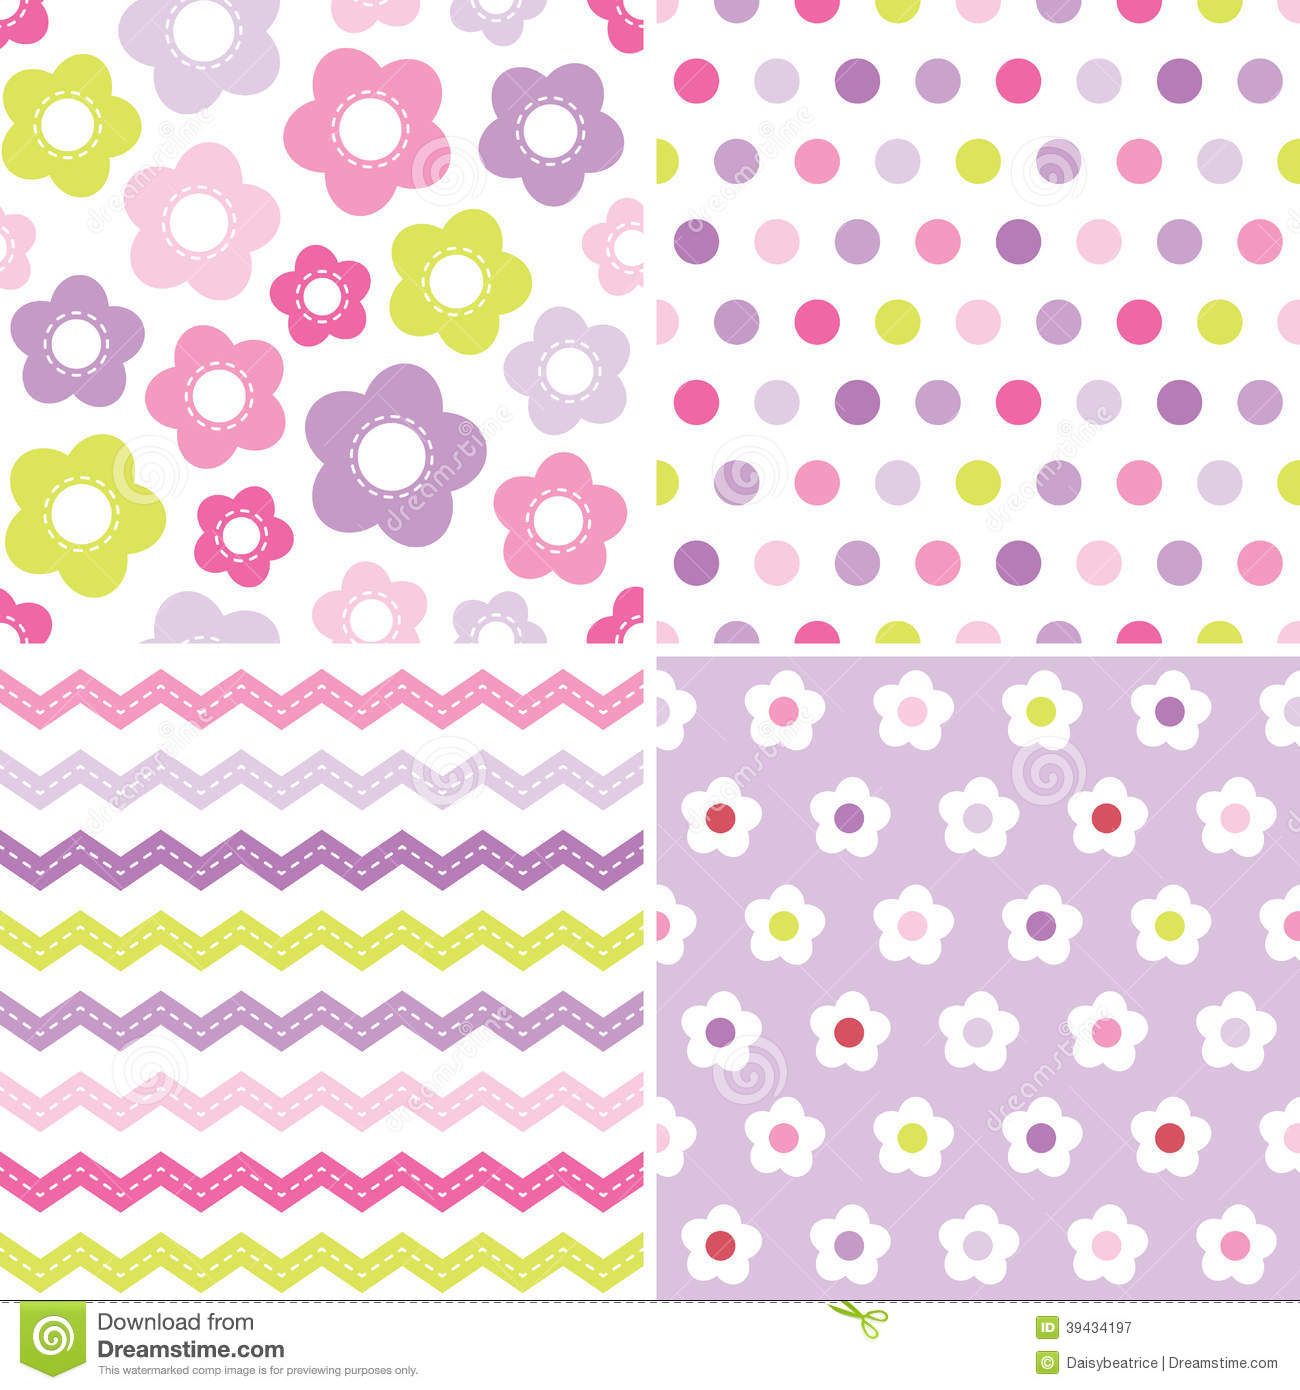 Cute seamless pink and purple background patterns stock vector cute seamless pink and purple background patterns stock vector illustration of girl graphic 39434197 negle Image collections